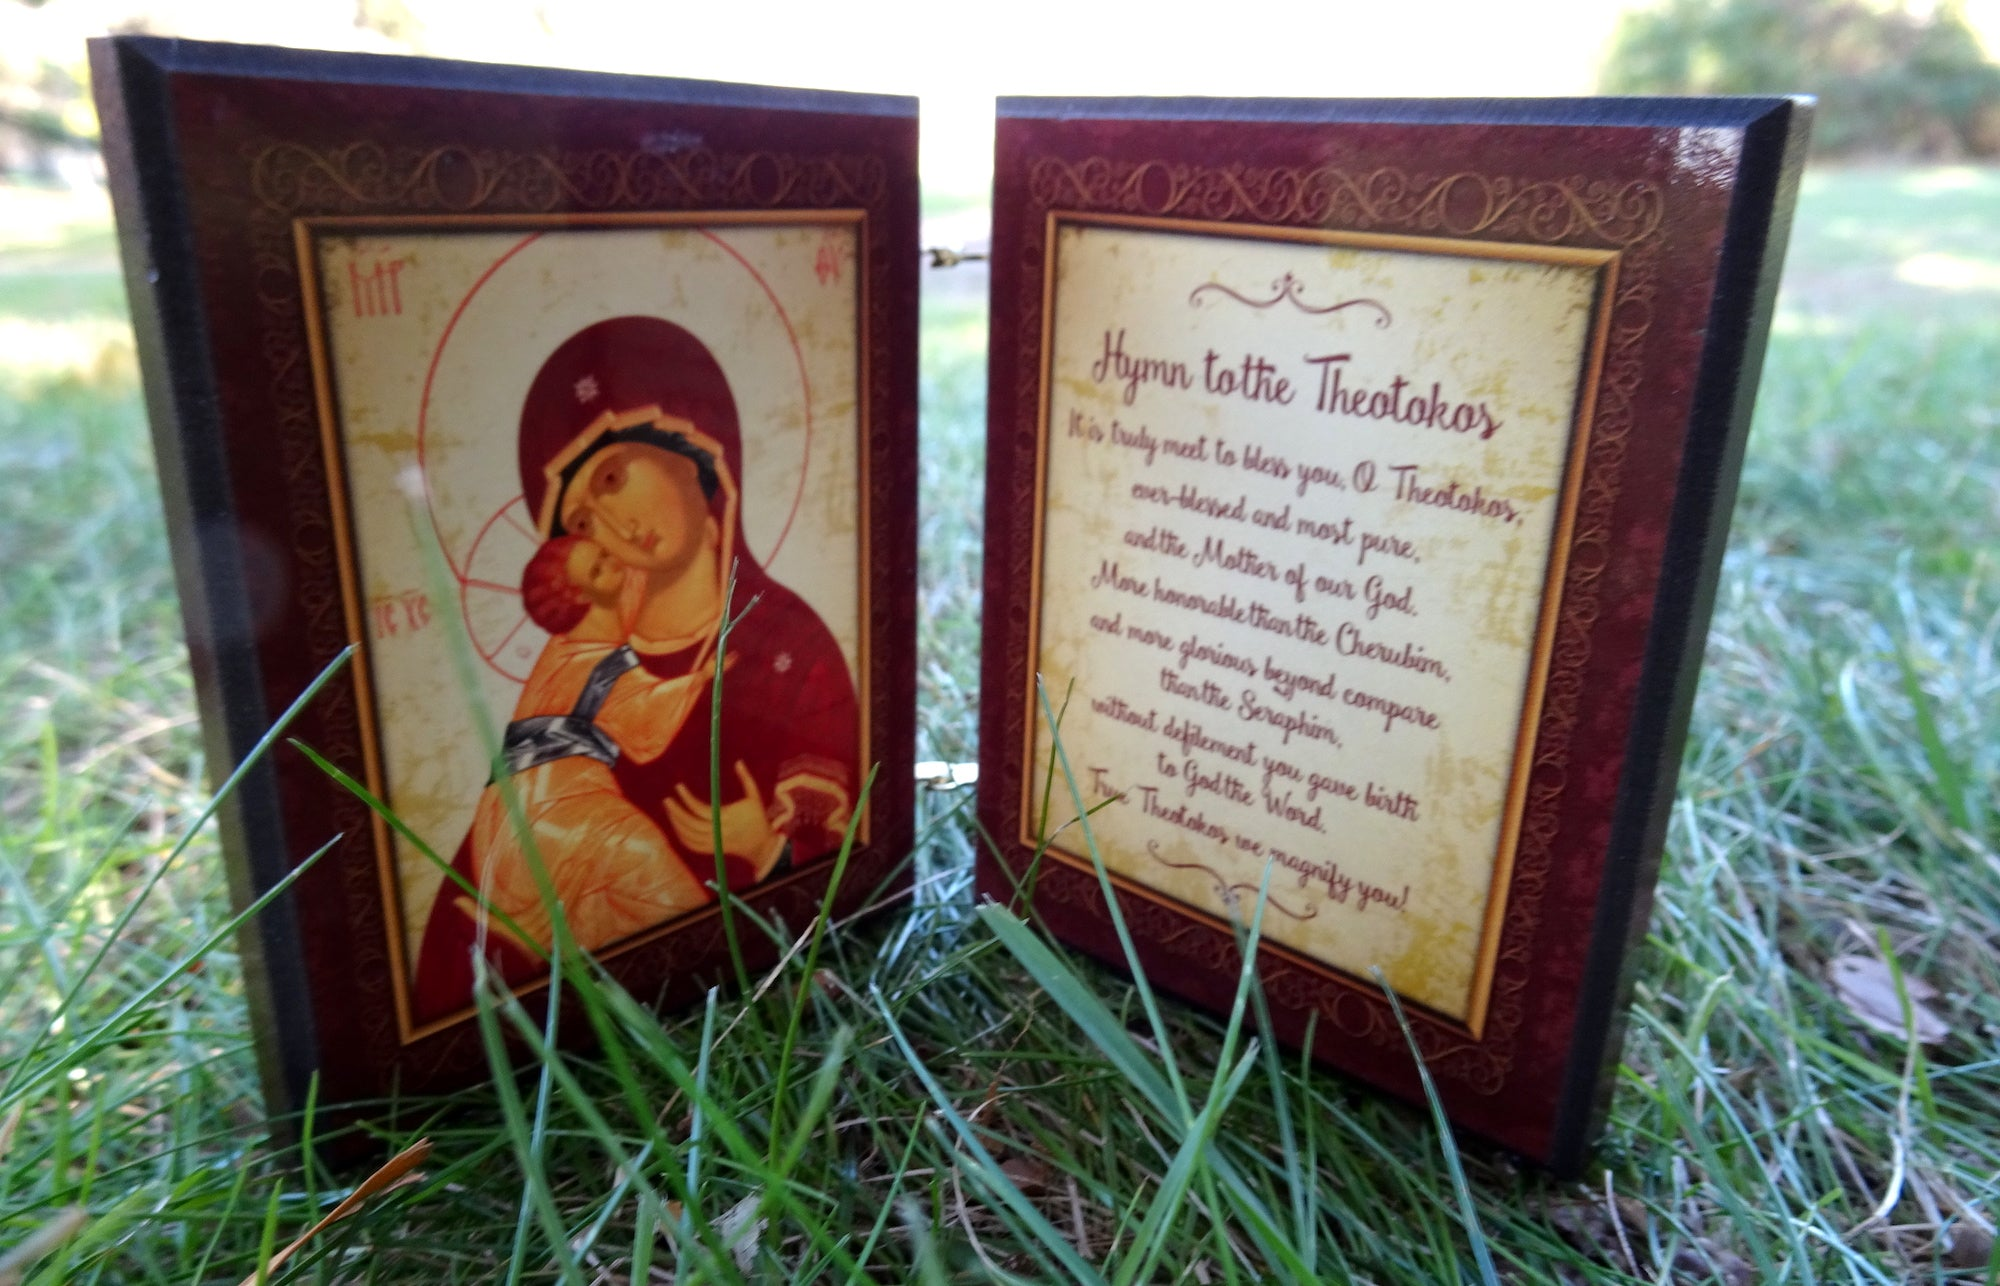 Wooden Orthodox Icon Diptych with the Hymn to the Theotokos